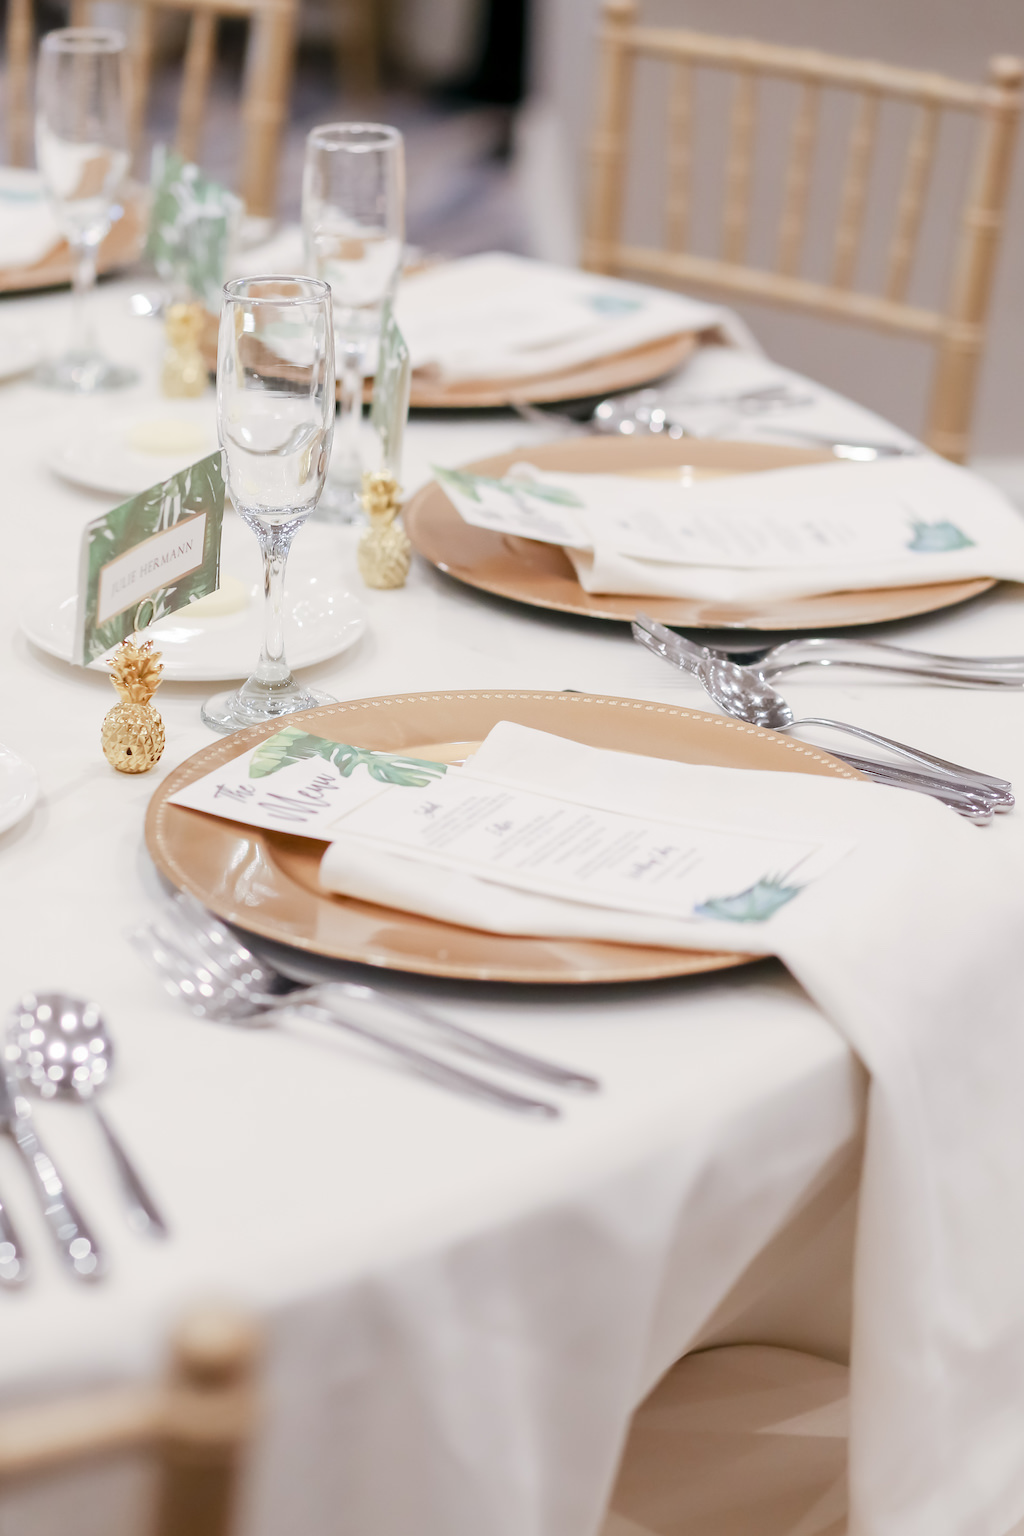 Tropical Elegance Wedding Reception Decor, White Linens, Gold Chargers, Tropical Stationery and Mini Gold Pineapple Accessory, Gold Chiavari Chairs   Tampa Bay Wedding Photographer Lifelong Photography Studios